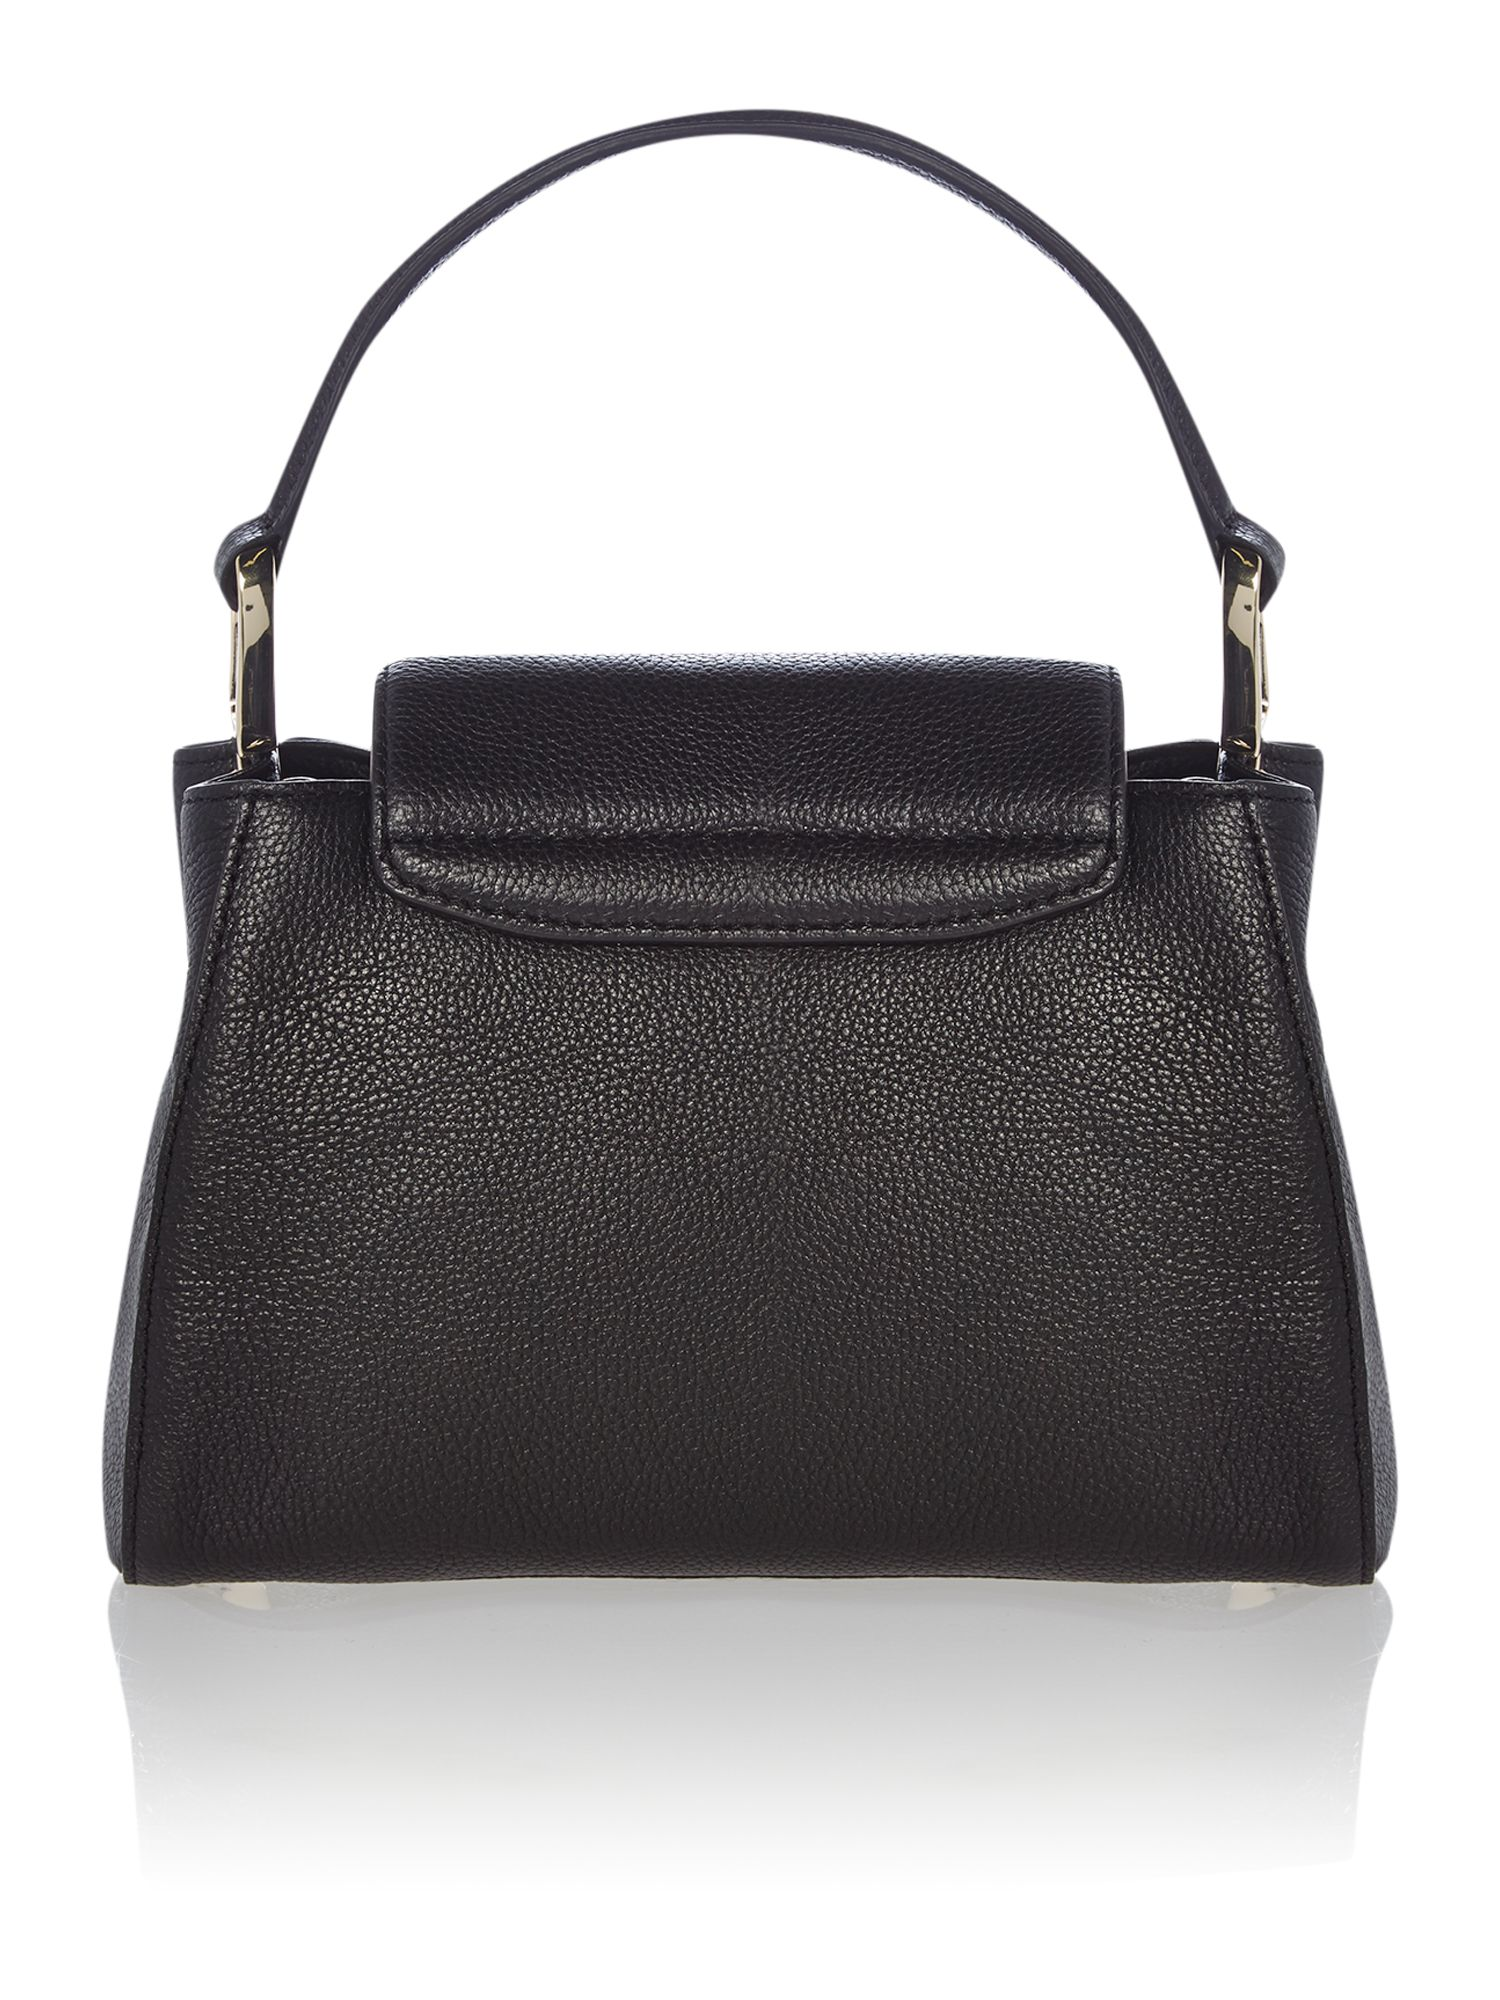 Chelsea black top handle cross body bag